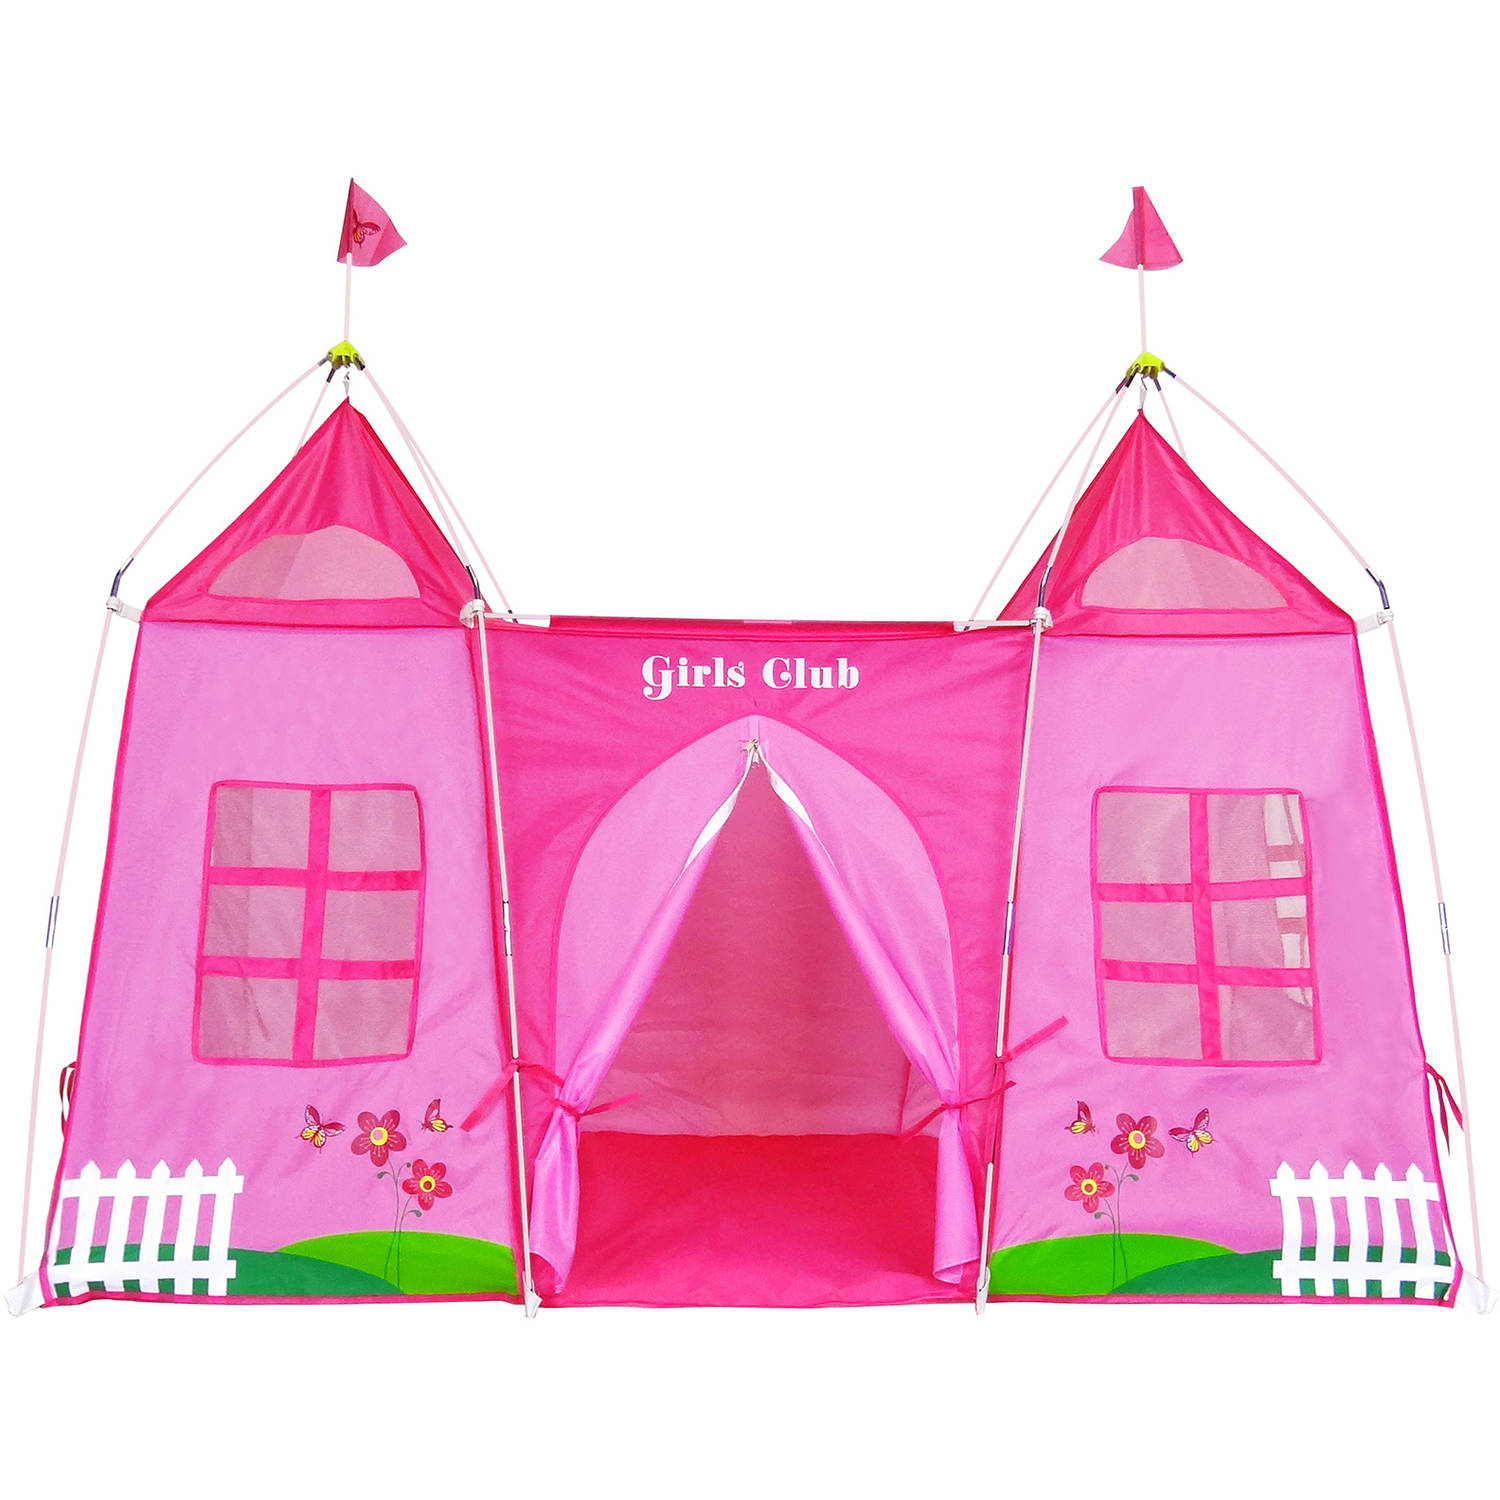 GigaTent Girls Club Pink Play Tent  sc 1 st  Walmart & GigaTent Girls Club Pink Play Tent - Walmart.com